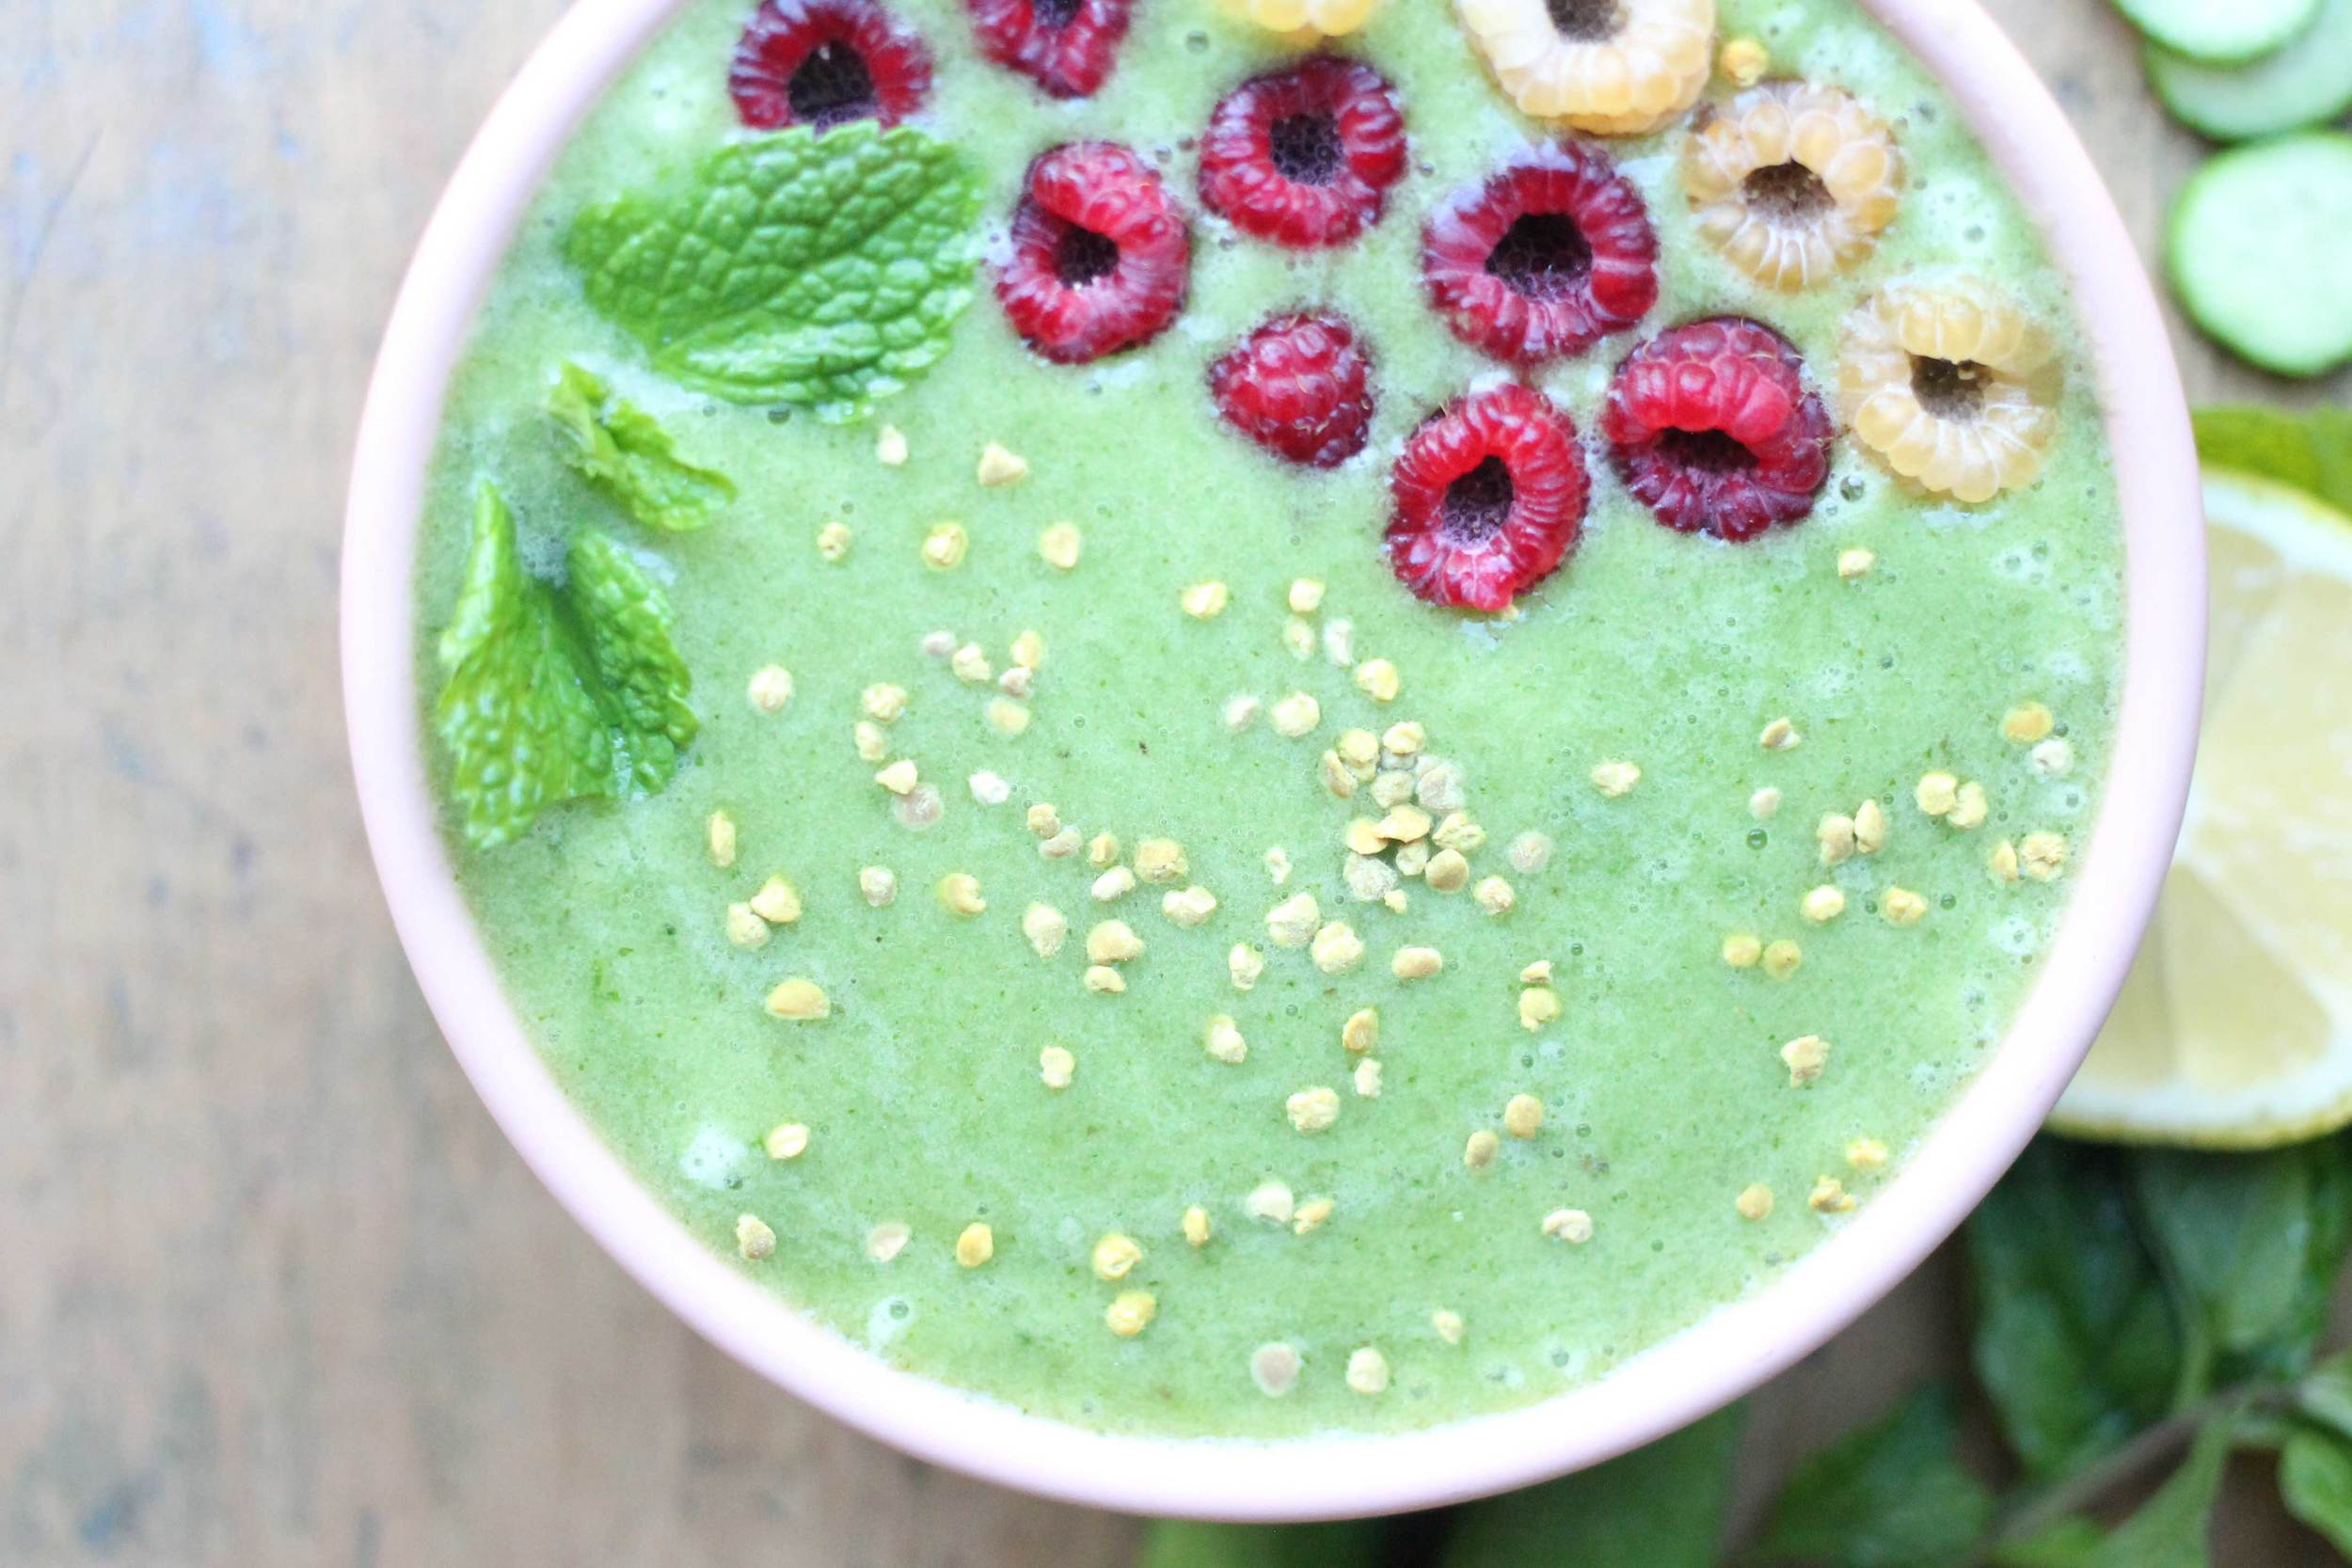 This refreshing smoothie is full of good things!